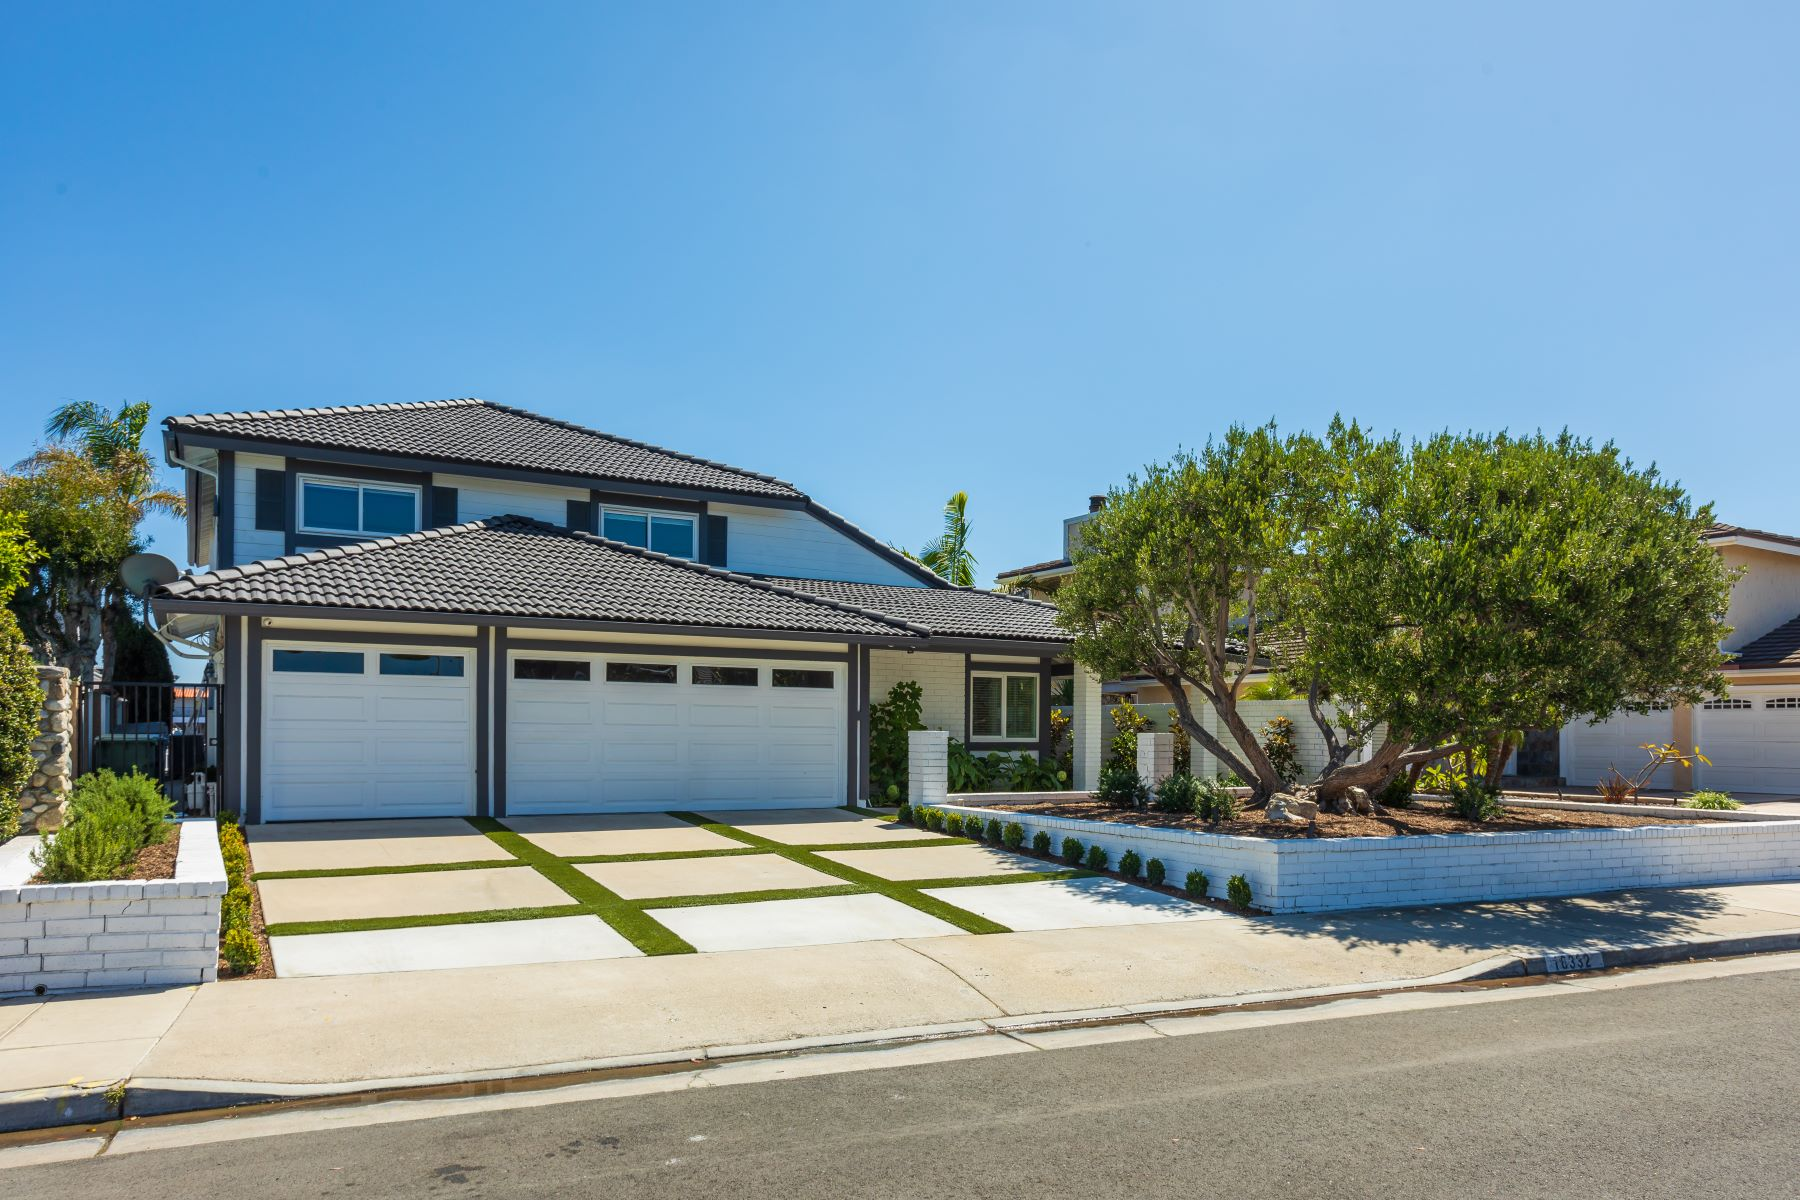 Single Family Homes for Sale at Sean Stanfield 16332 Sundancer Lane Huntington Beach, California 92649 United States